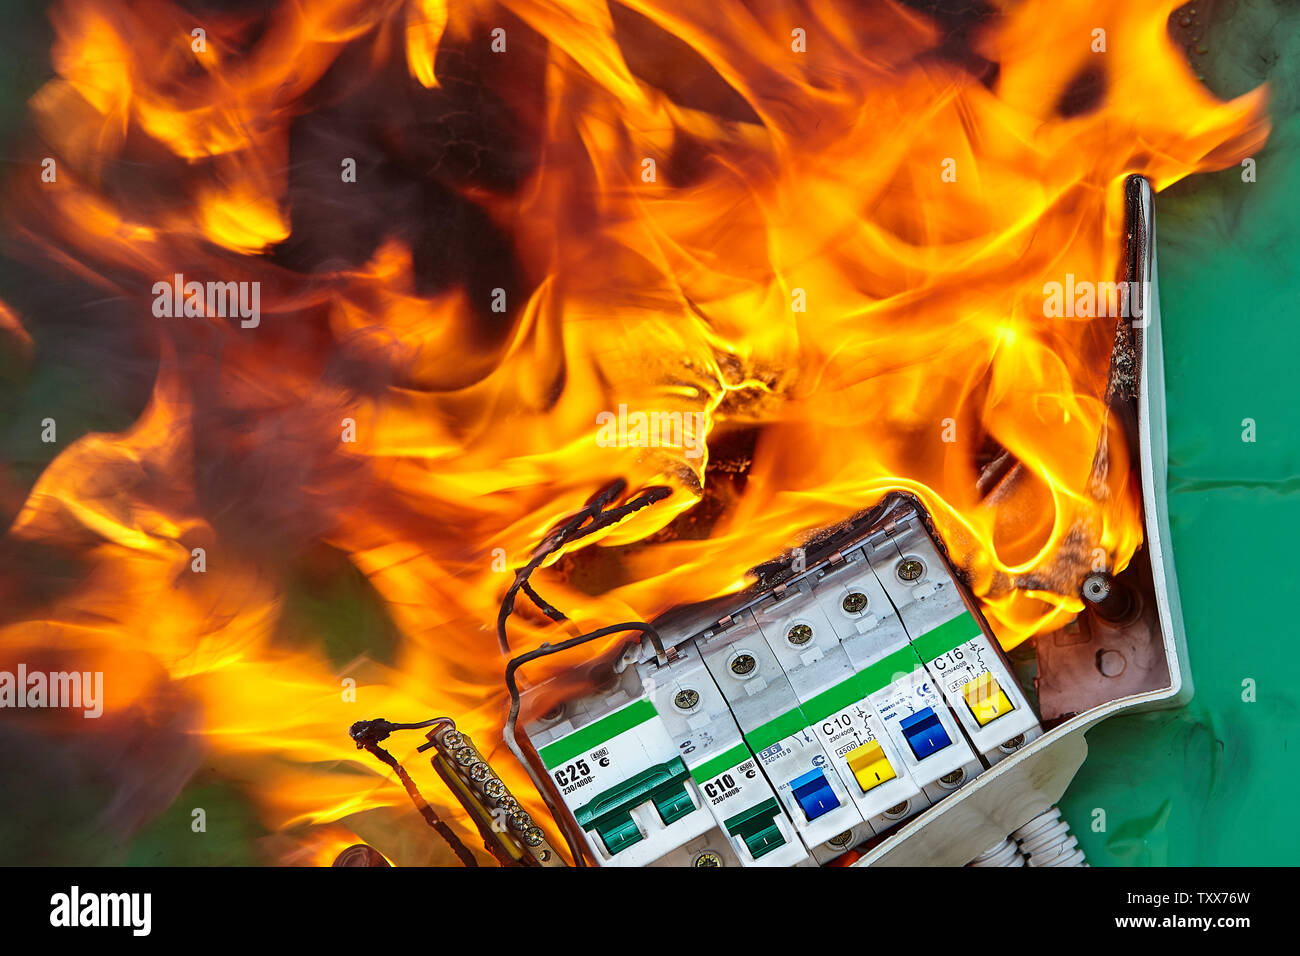 Fire can occur when there are instances of faulty electrical appliances and wiring at home, causing an electrical fire. Stock Photo